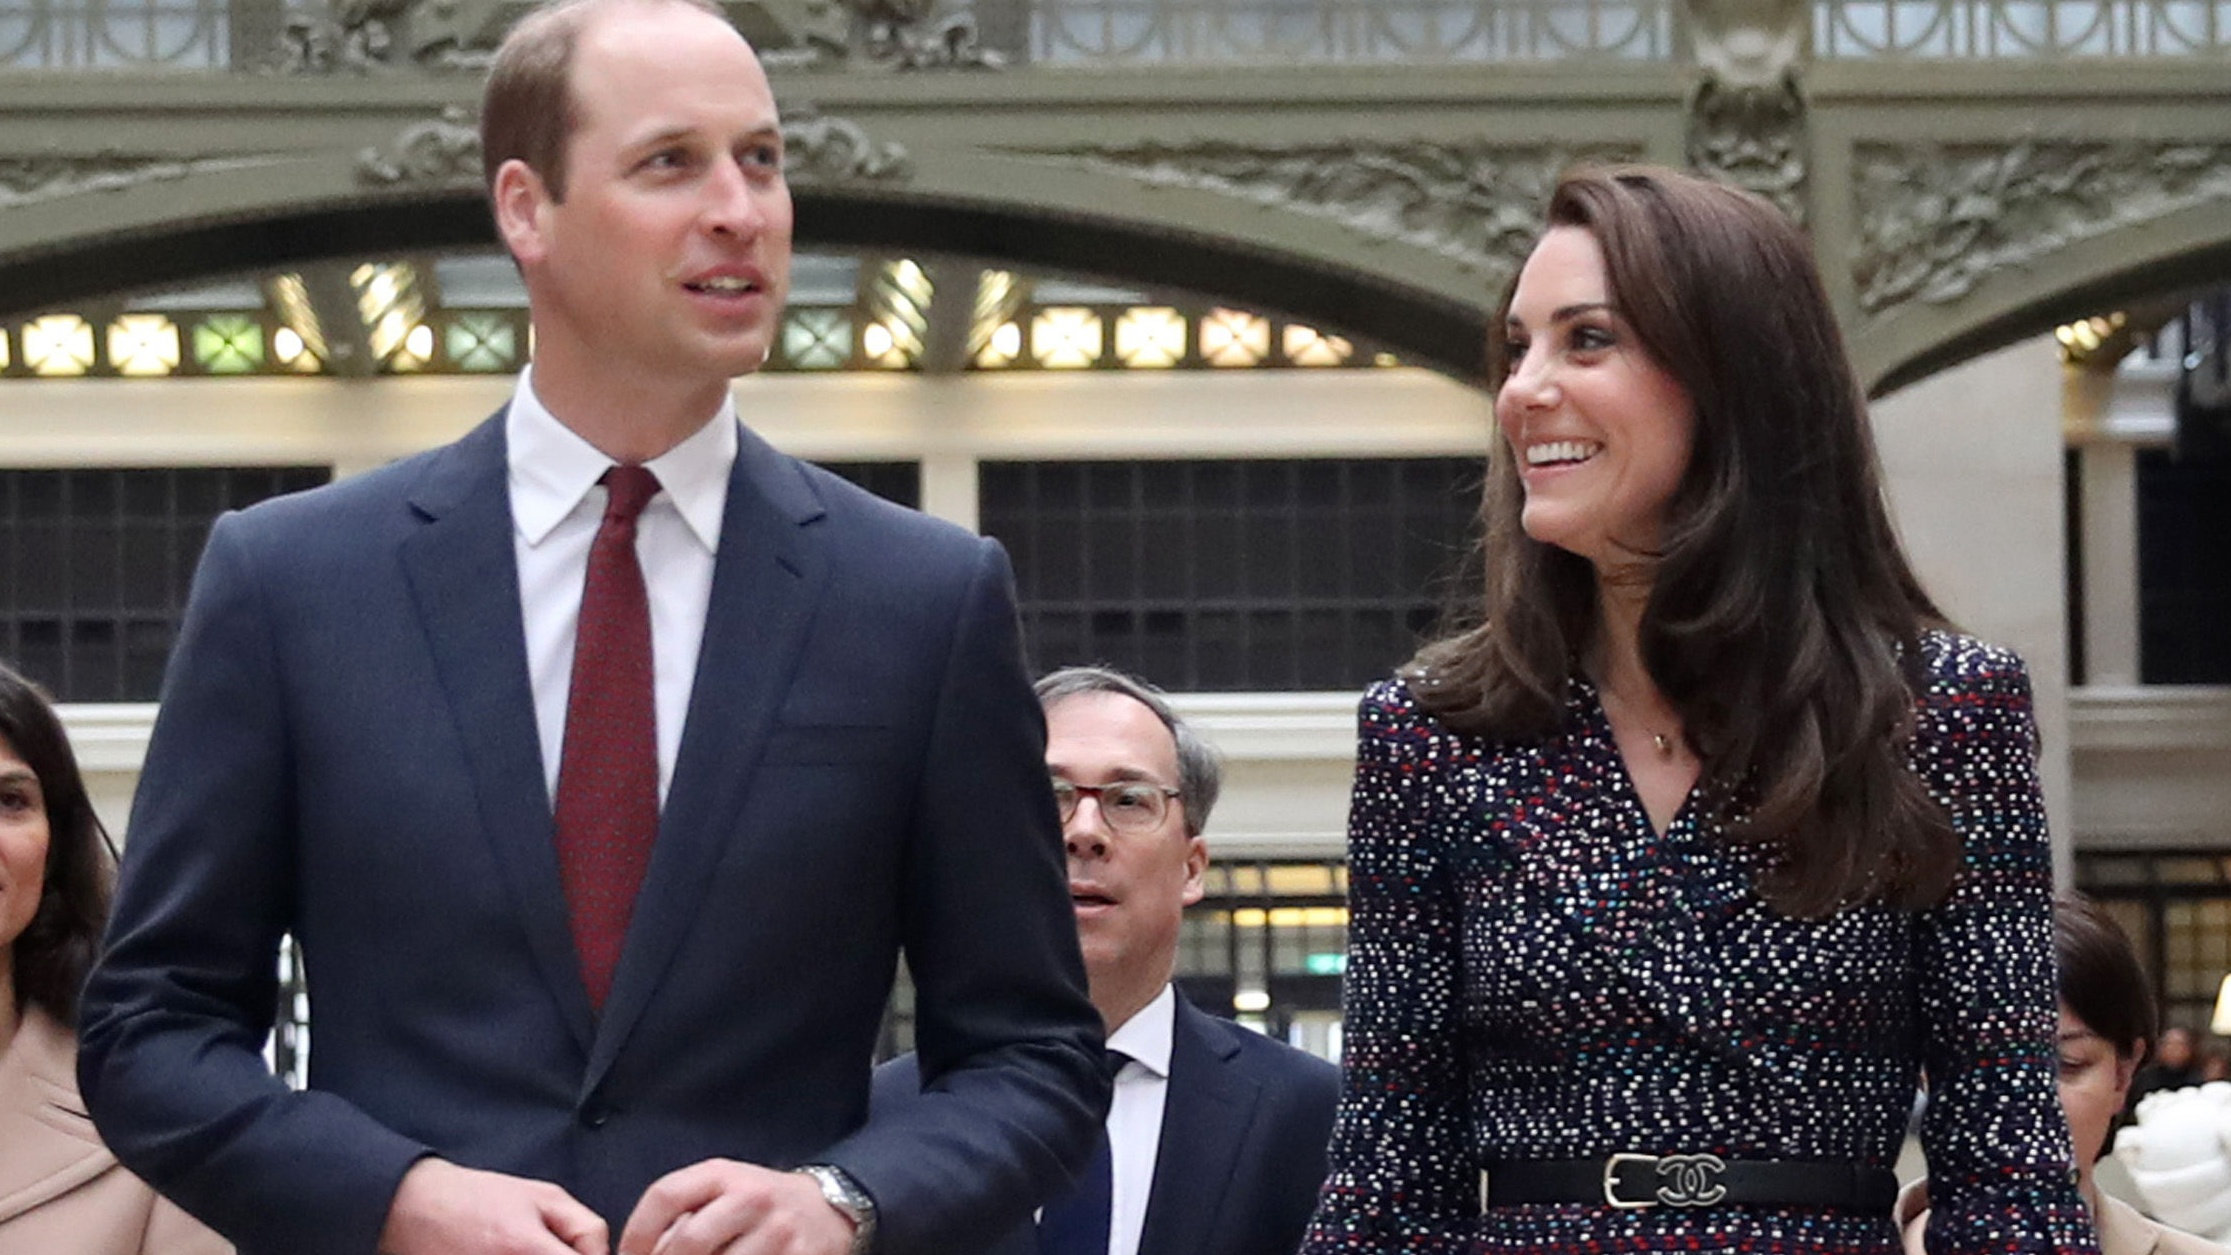 William and Kate to make five-day visit to Poland and Germany